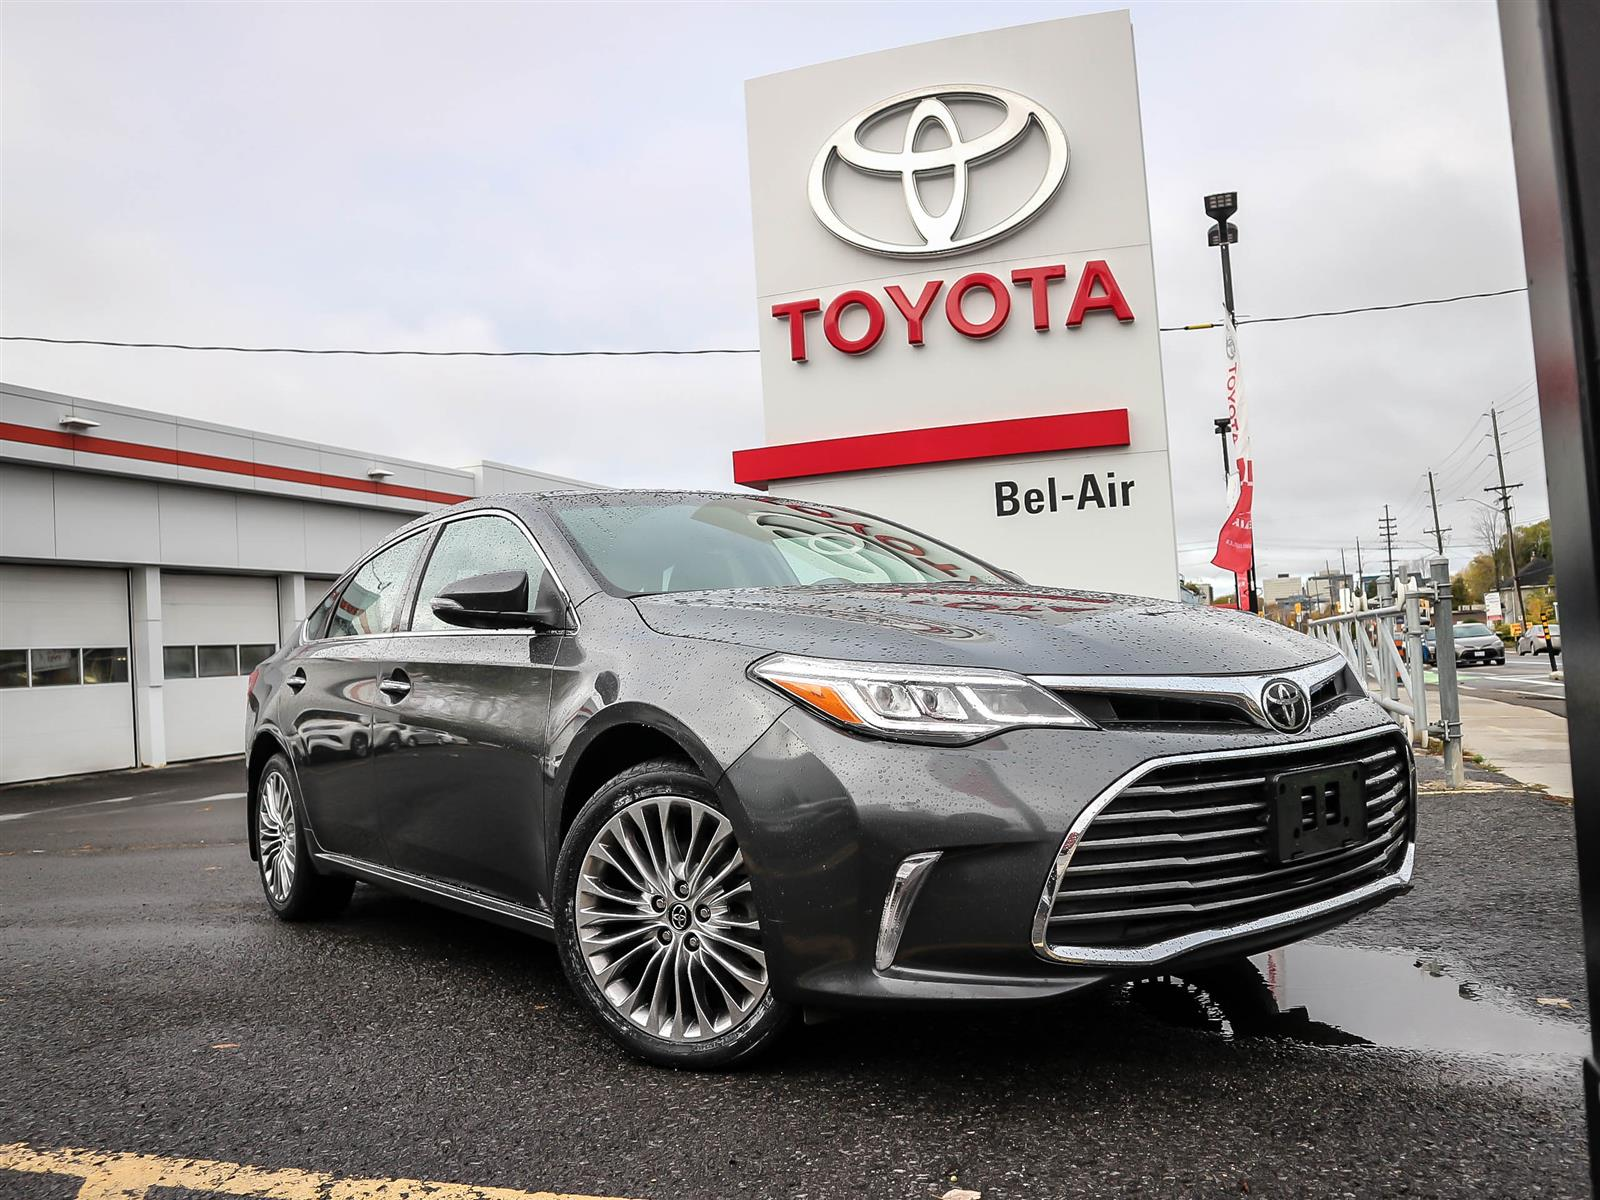 2018 Toyota Avalon at Bel-Air Toyota